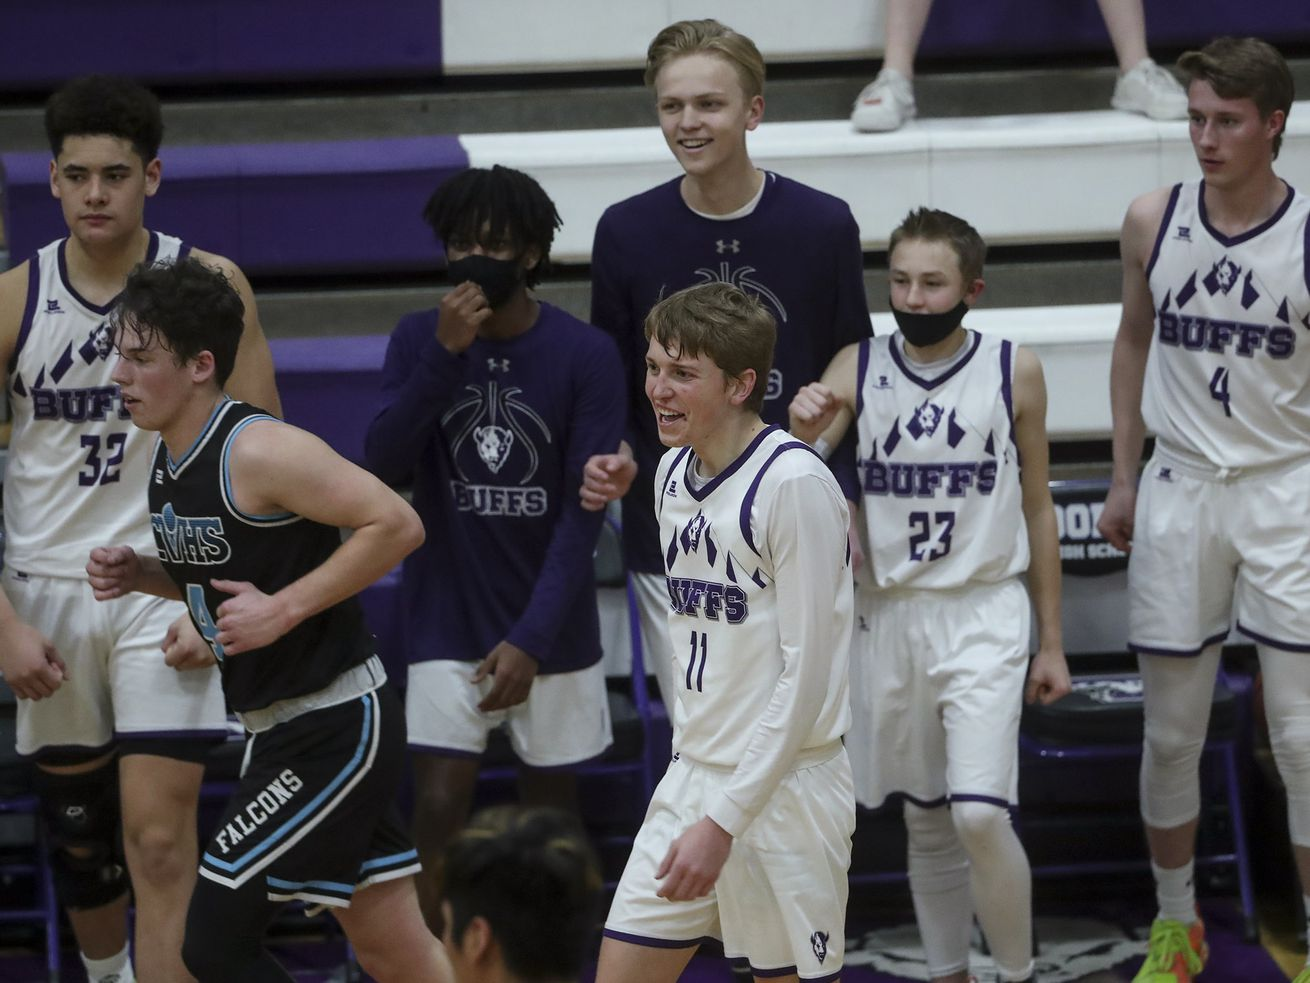 Tooele's McCade Laughlin smiles after he nailed a 3-pointer to end the third quarter during the first round game against Canyon View during the 4A basketball tournament at Tooele High School on Tuesday, Feb. 23, 2021.